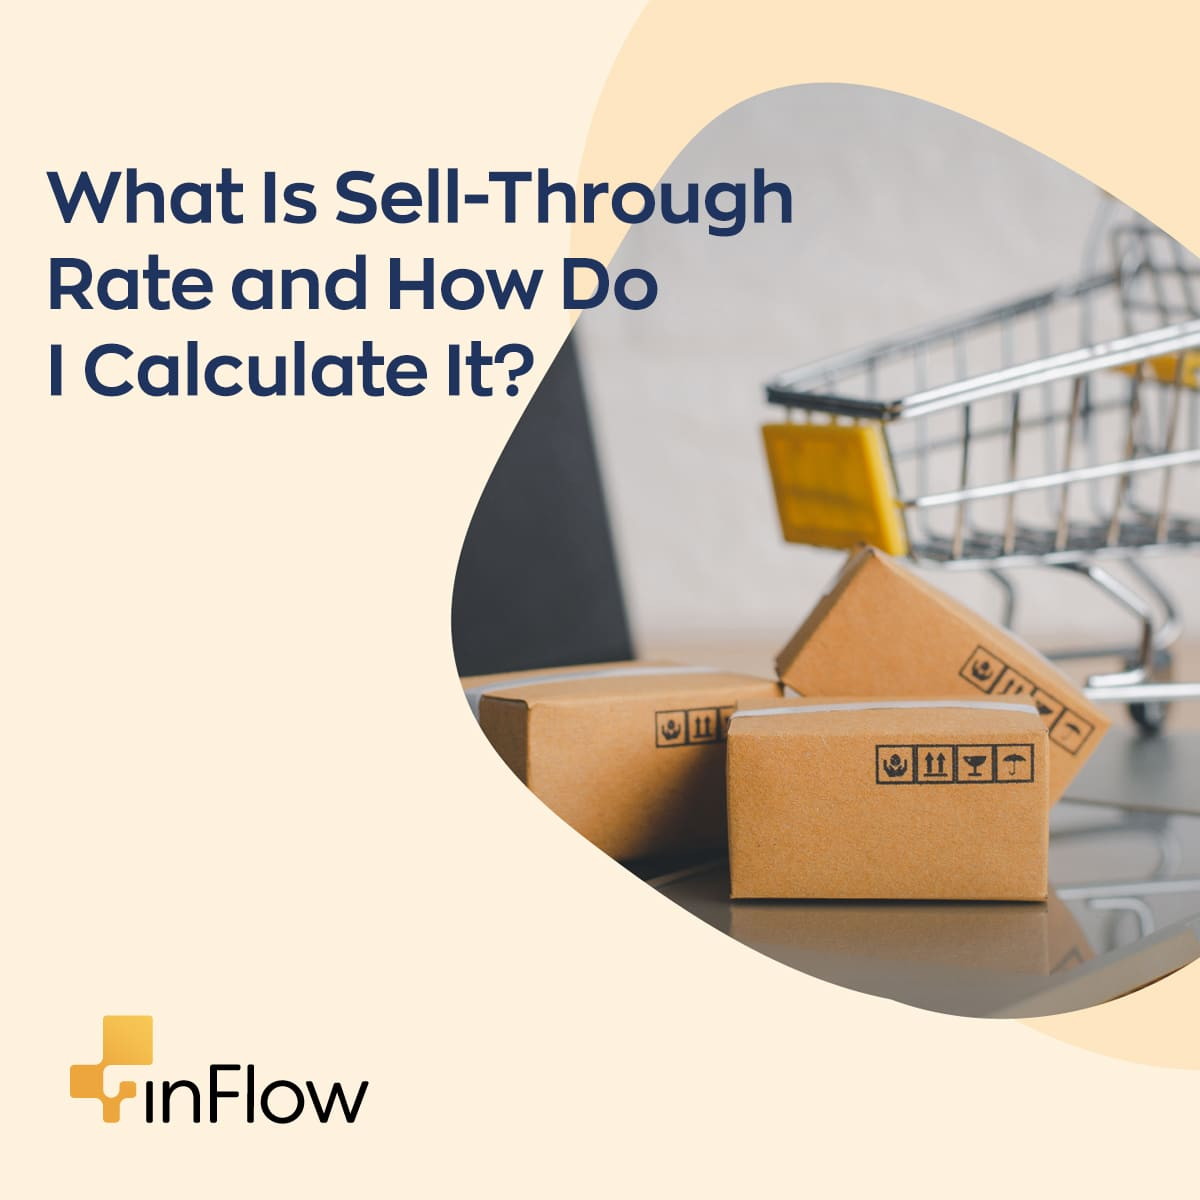 What is sell through rate and how do I calculate it